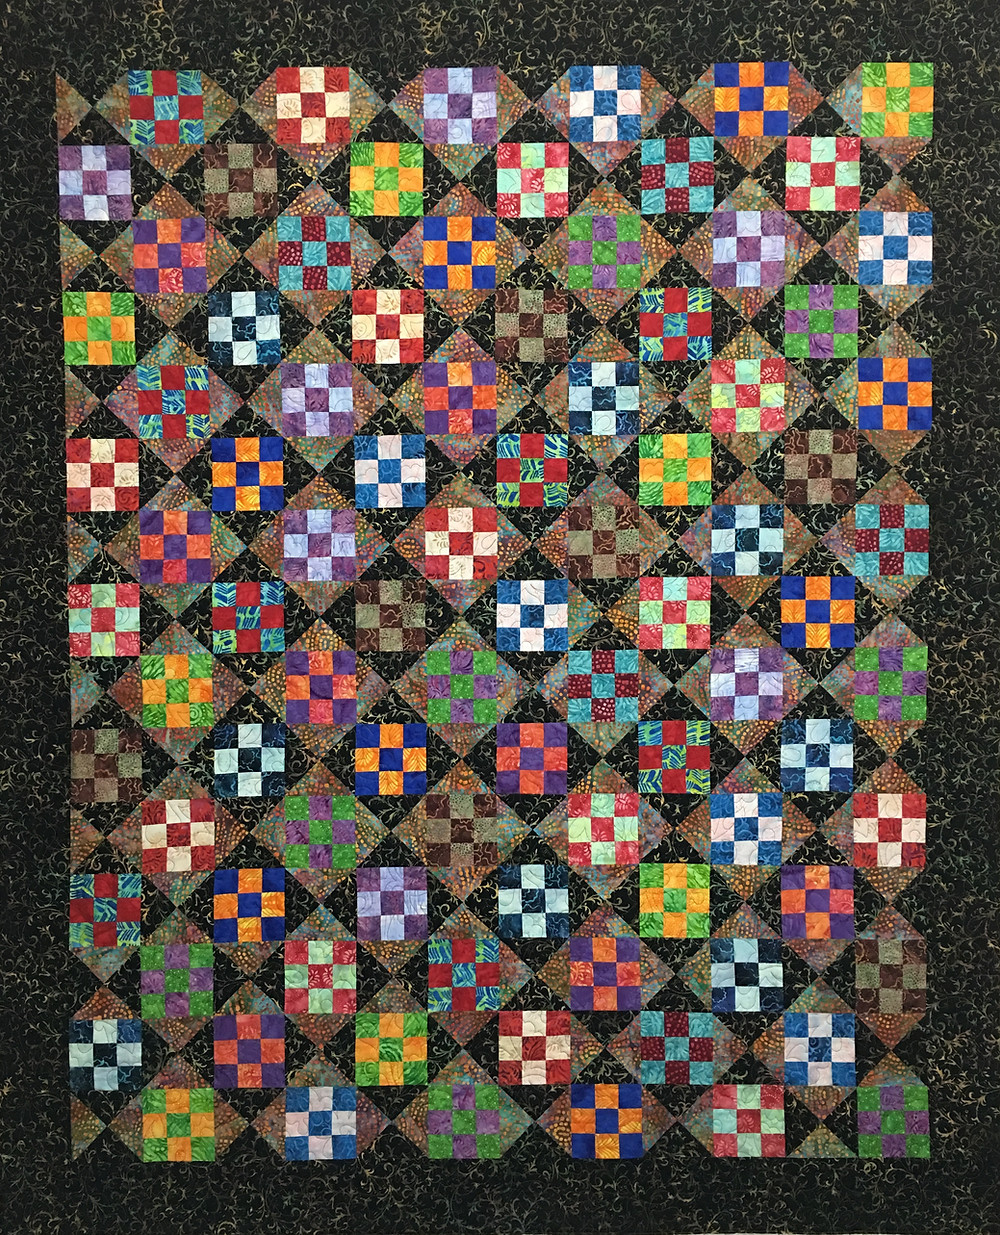 Nine Patch Play Quilt by Chris Olsen